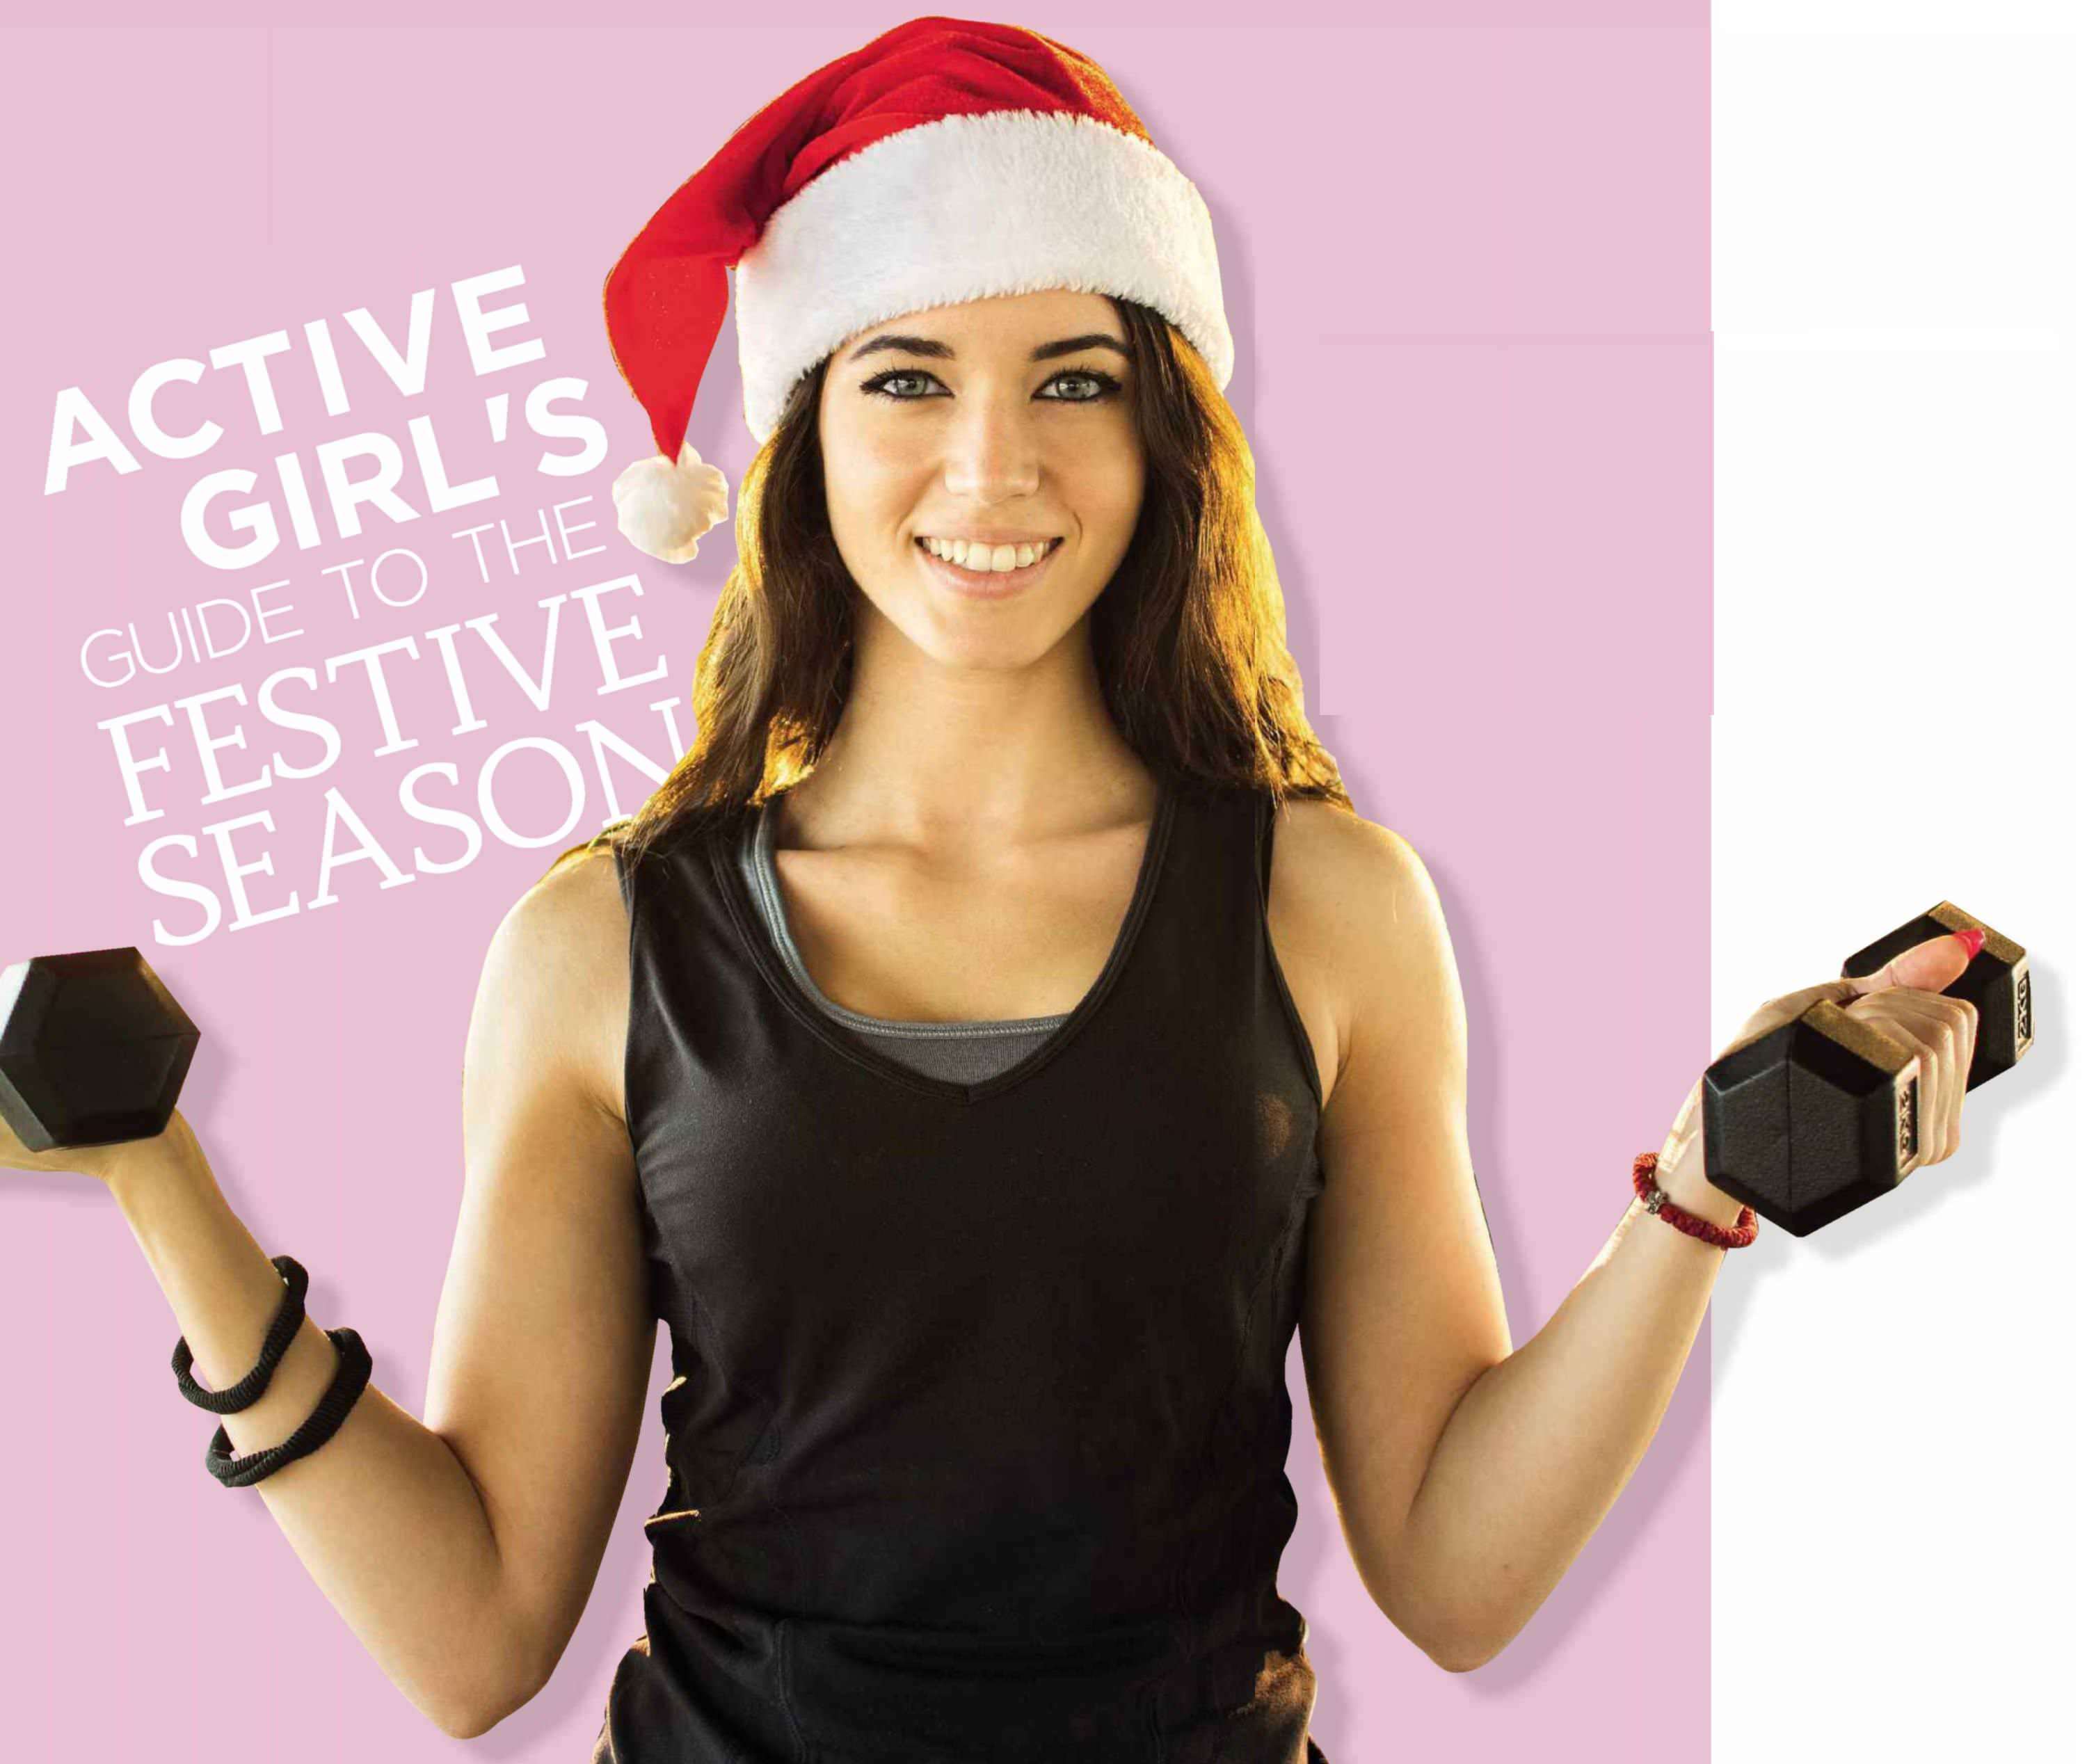 Active Girl's Guide To The Festive Season